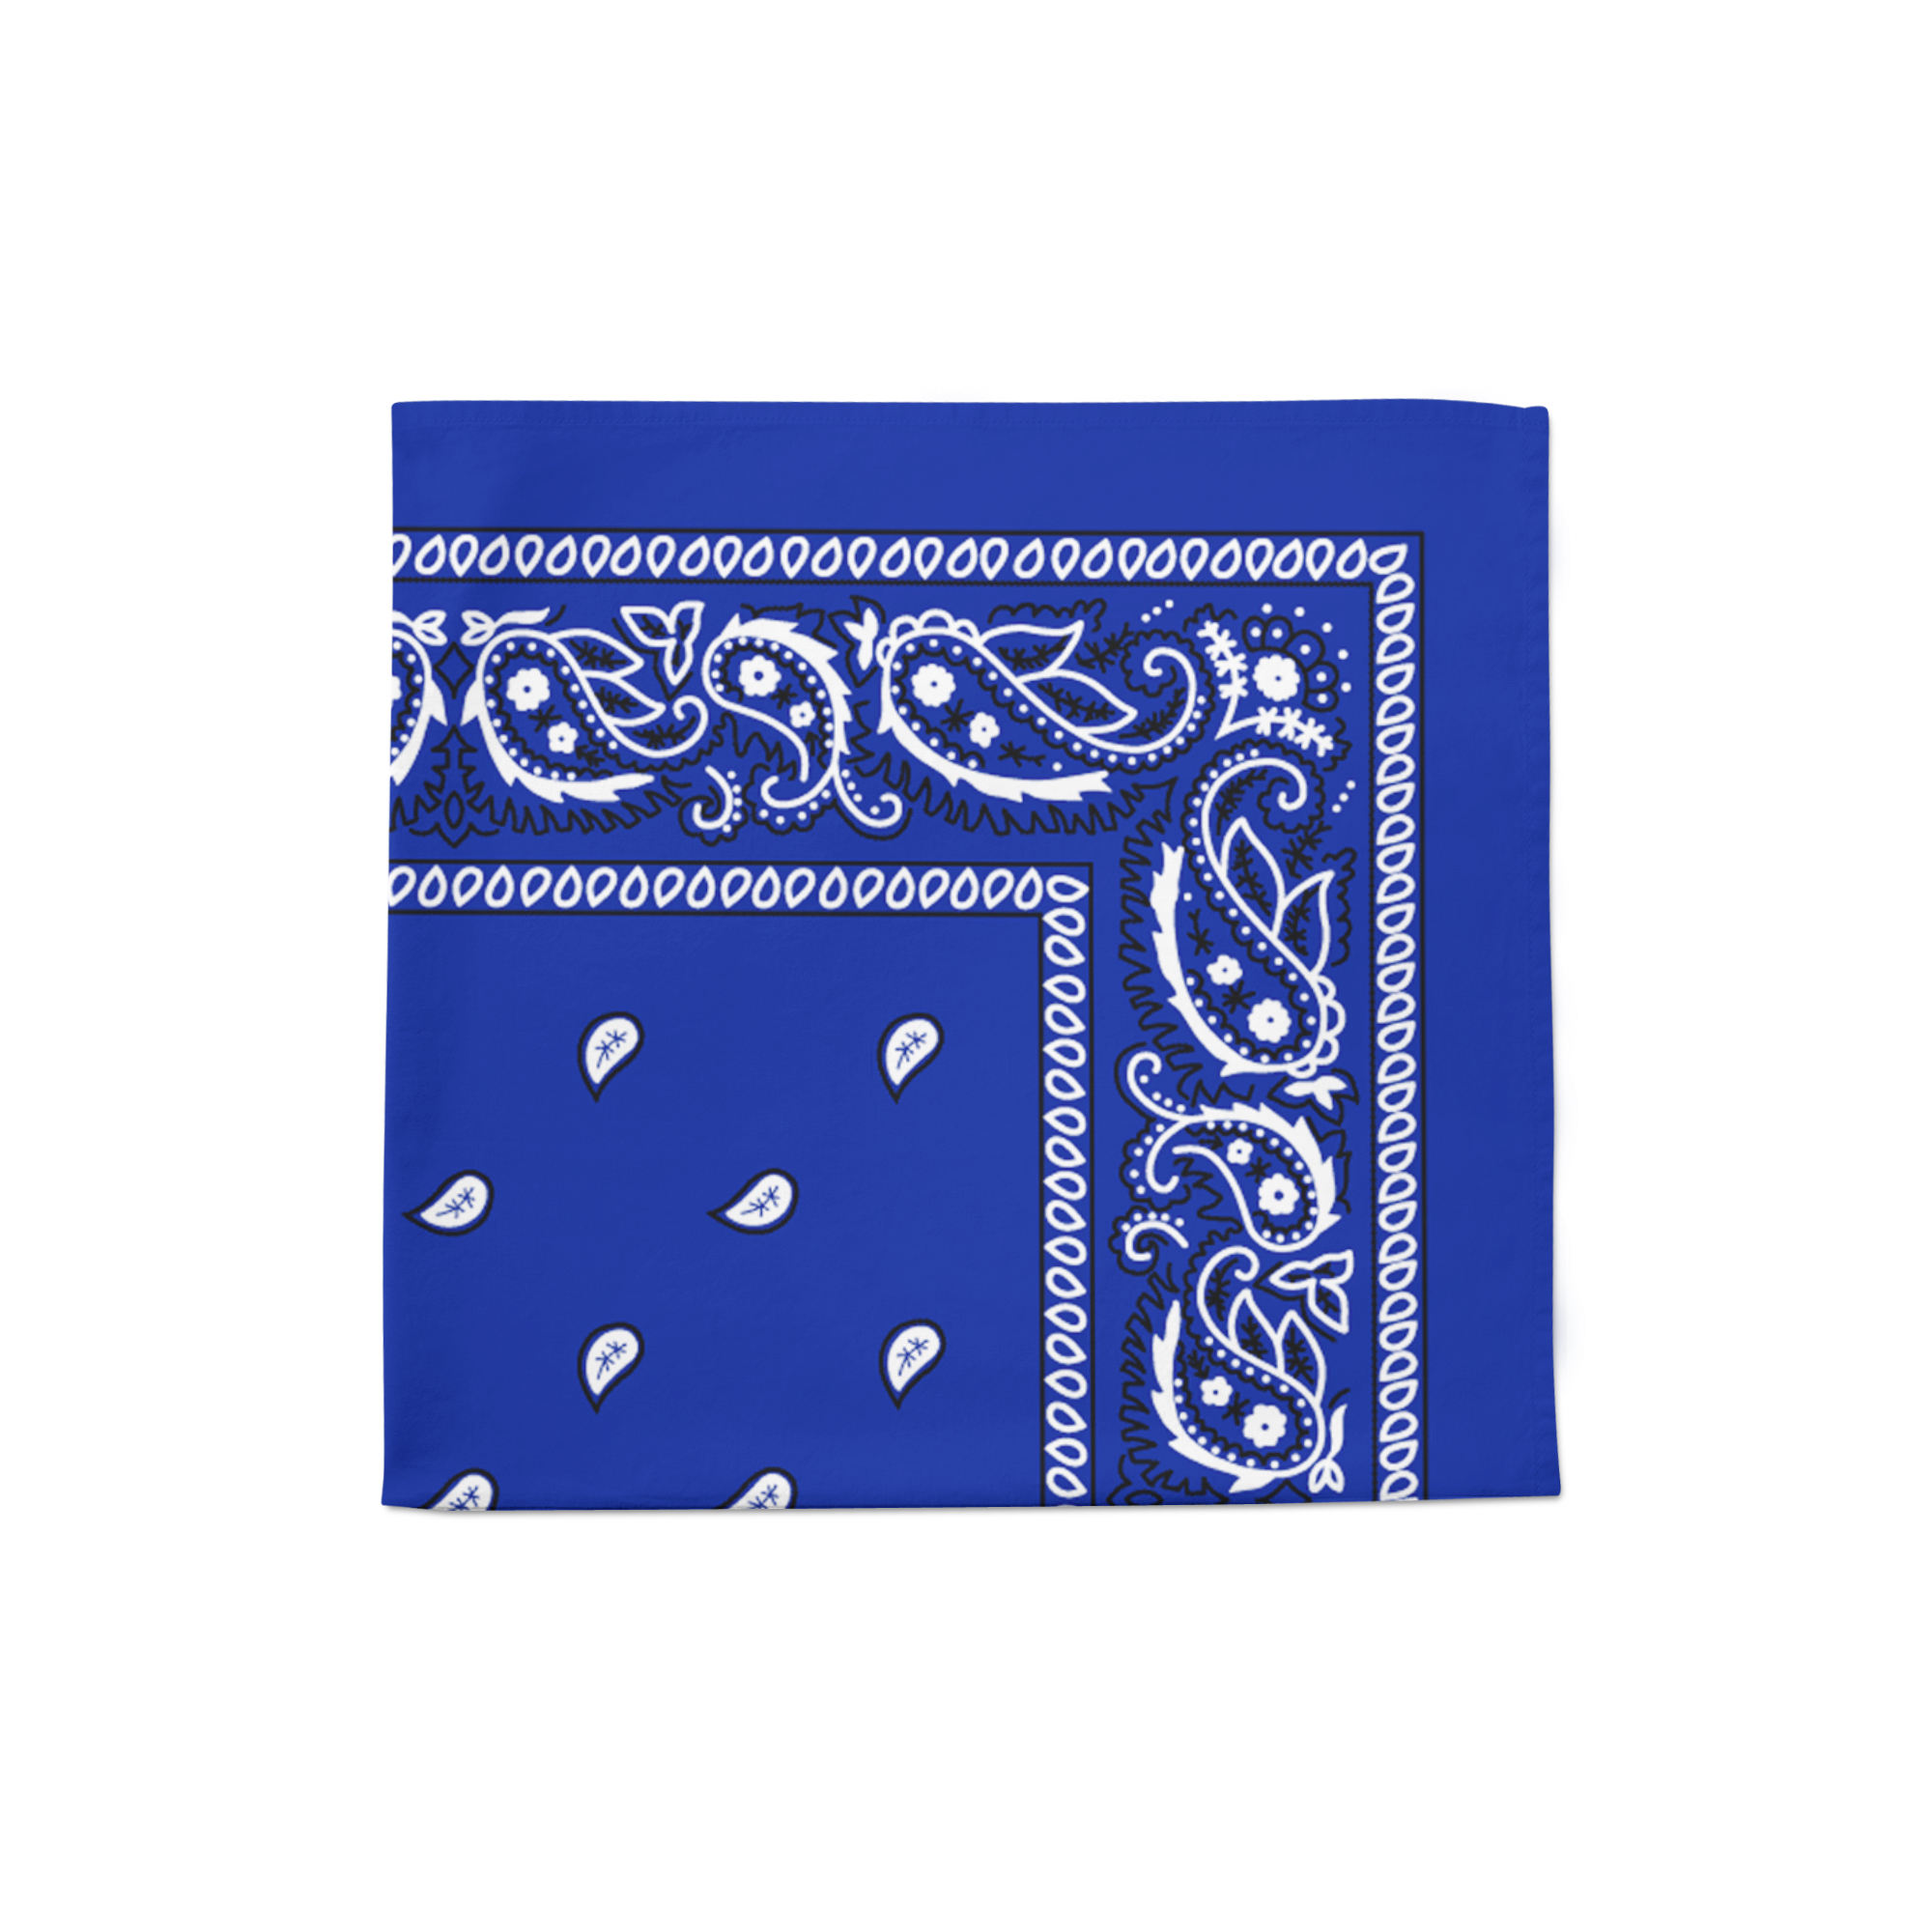 Paisley Polyester Bandana 22 inches Sold in Units Multi Uses Face Covering Napkins Handkerchief Scarf